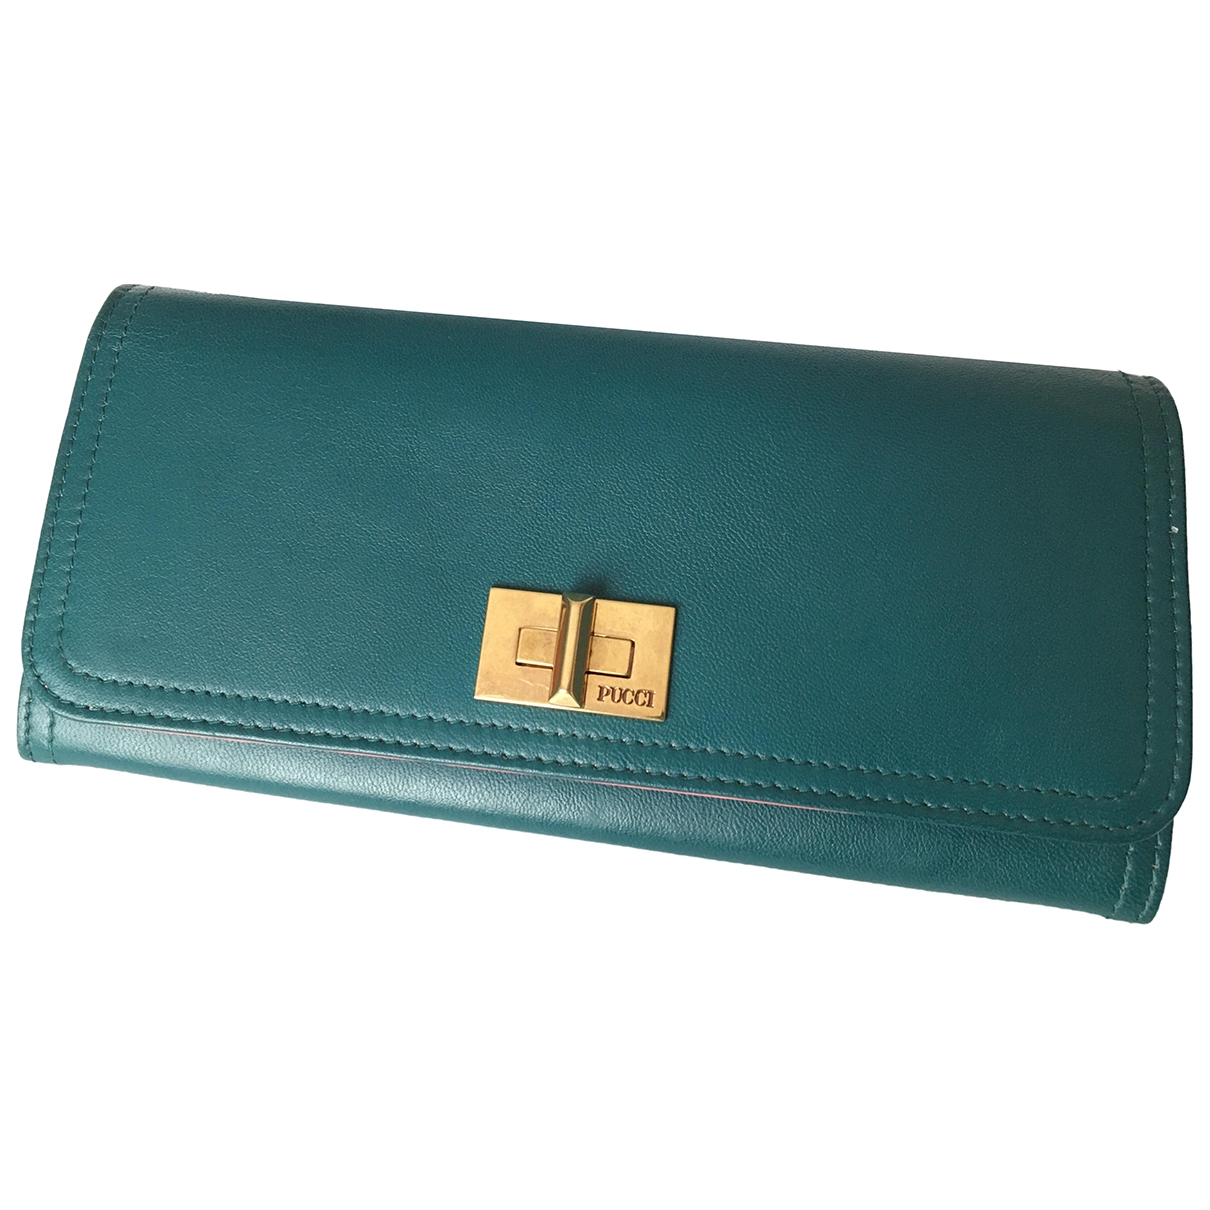 Emilio Pucci \N Green Leather wallet for Women \N